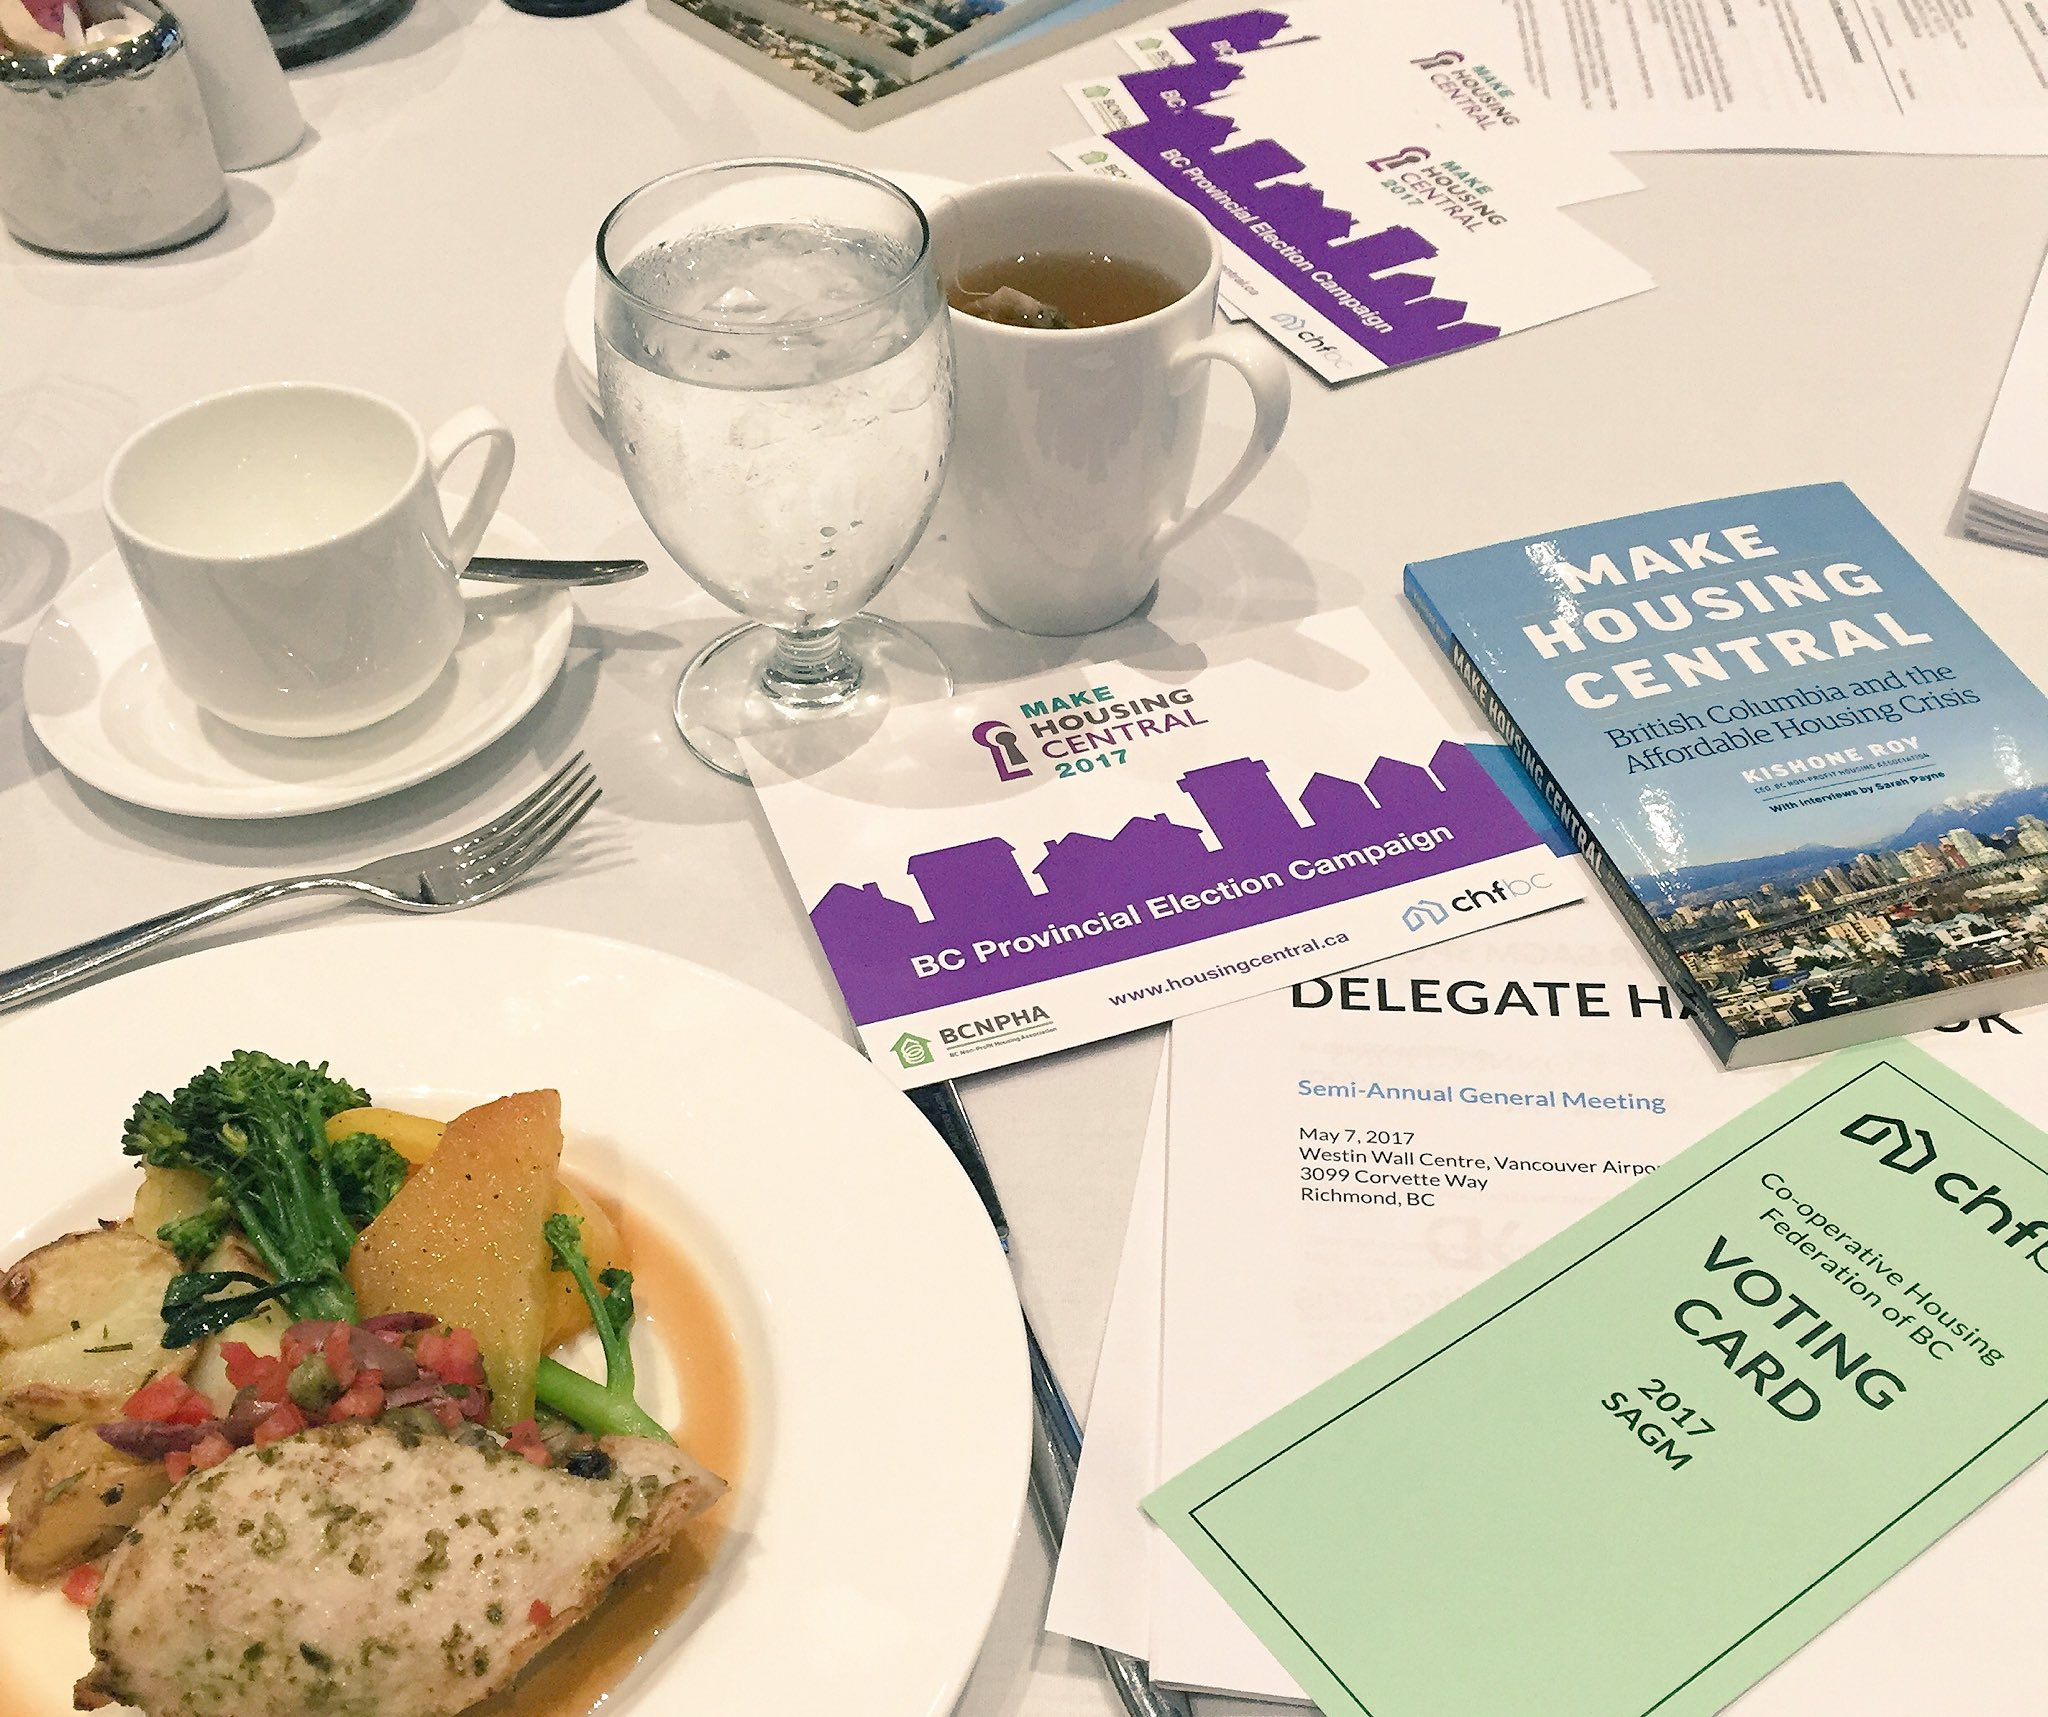 Lunch is looking good!🍴Thanks for the great service, @WallCentreYVR. Our delegates love the new venue! #coops #strongercommunities https://t.co/l0lknzd4l5